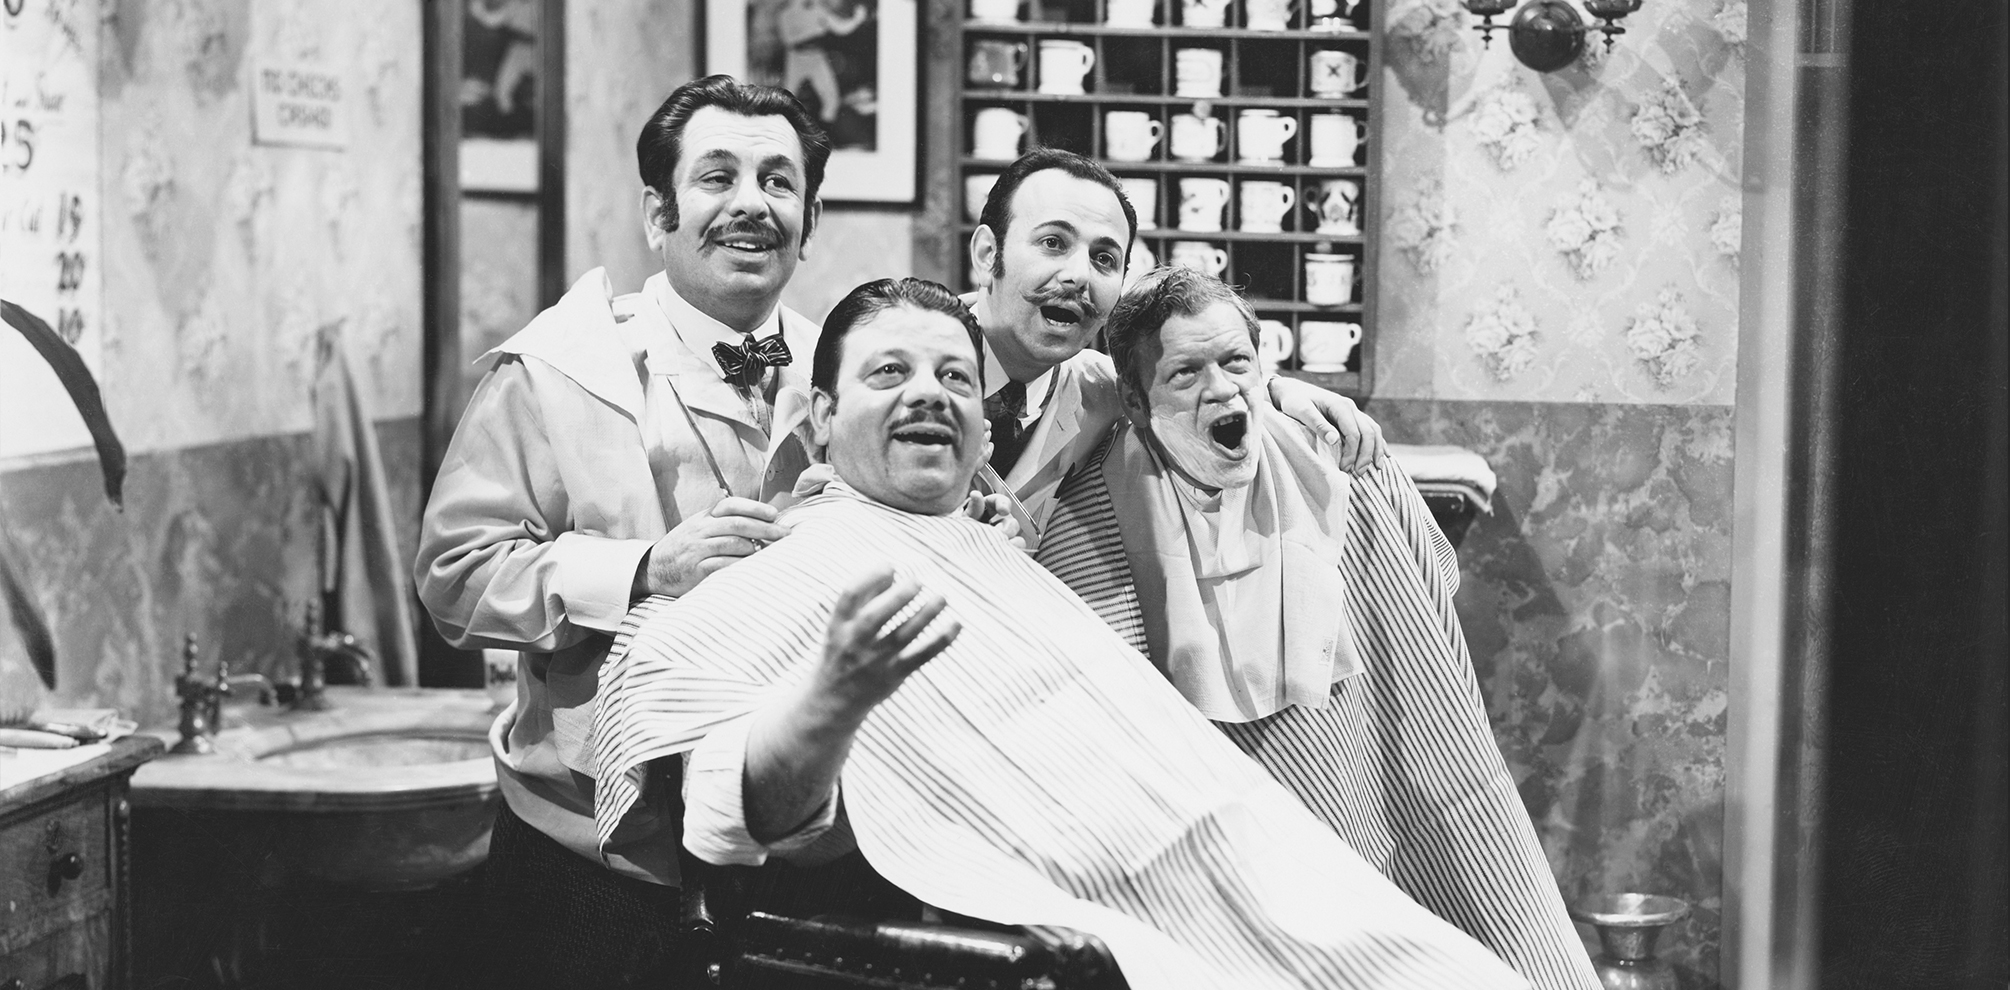 barbers shop quartet